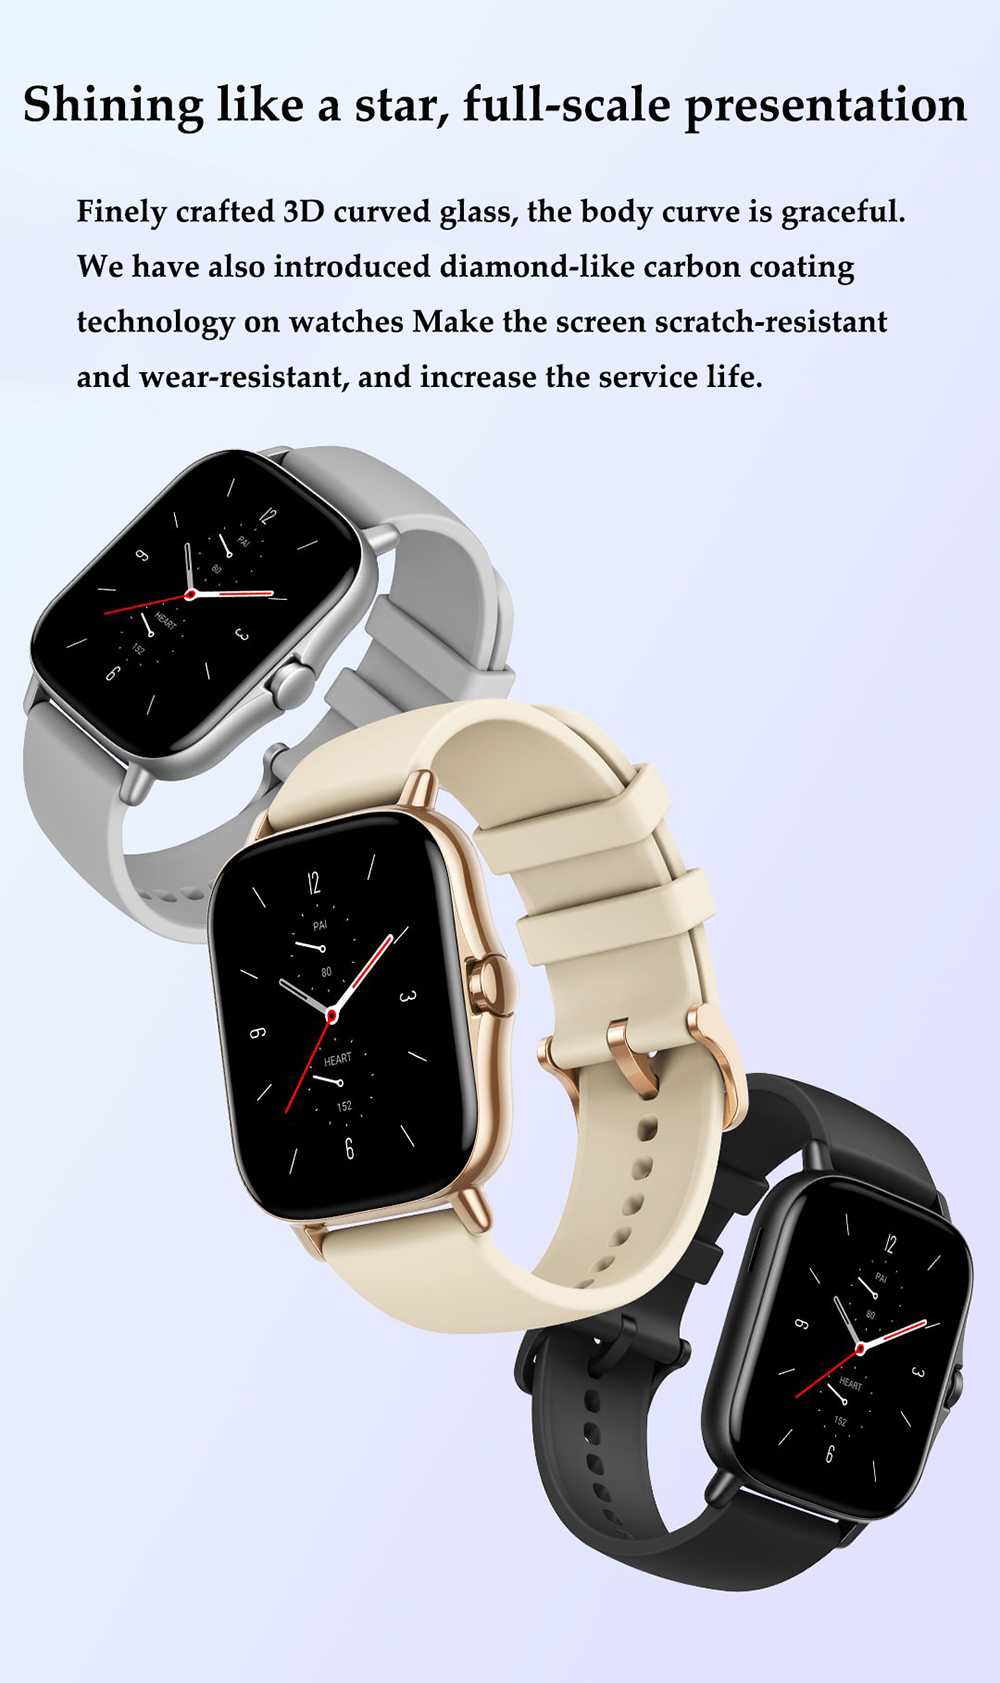 H0bae7f5e8d9c417b891dd93bf826420de For Xiaomi IOS Apple Phone 1.78inch Smart Watch Android Men IP68 Waterproof Full Touch Woman Smartwatch Women 2021 Answer Call